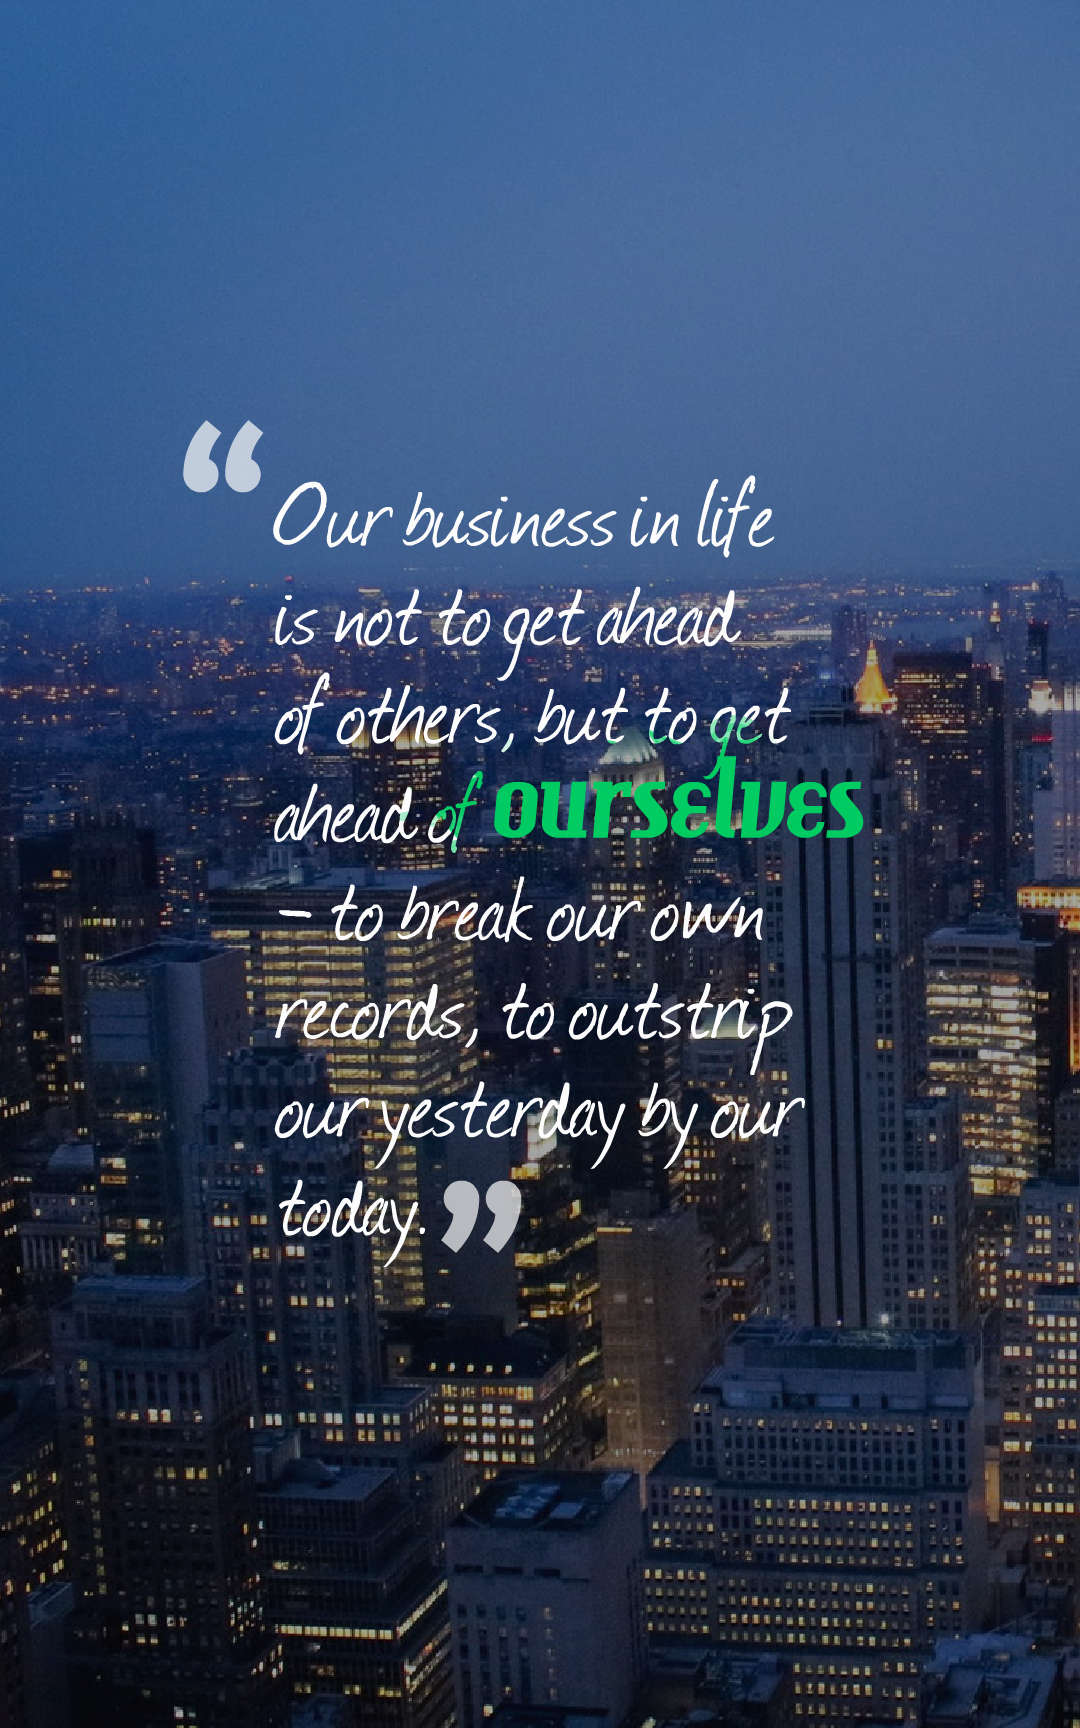 Quotes image of